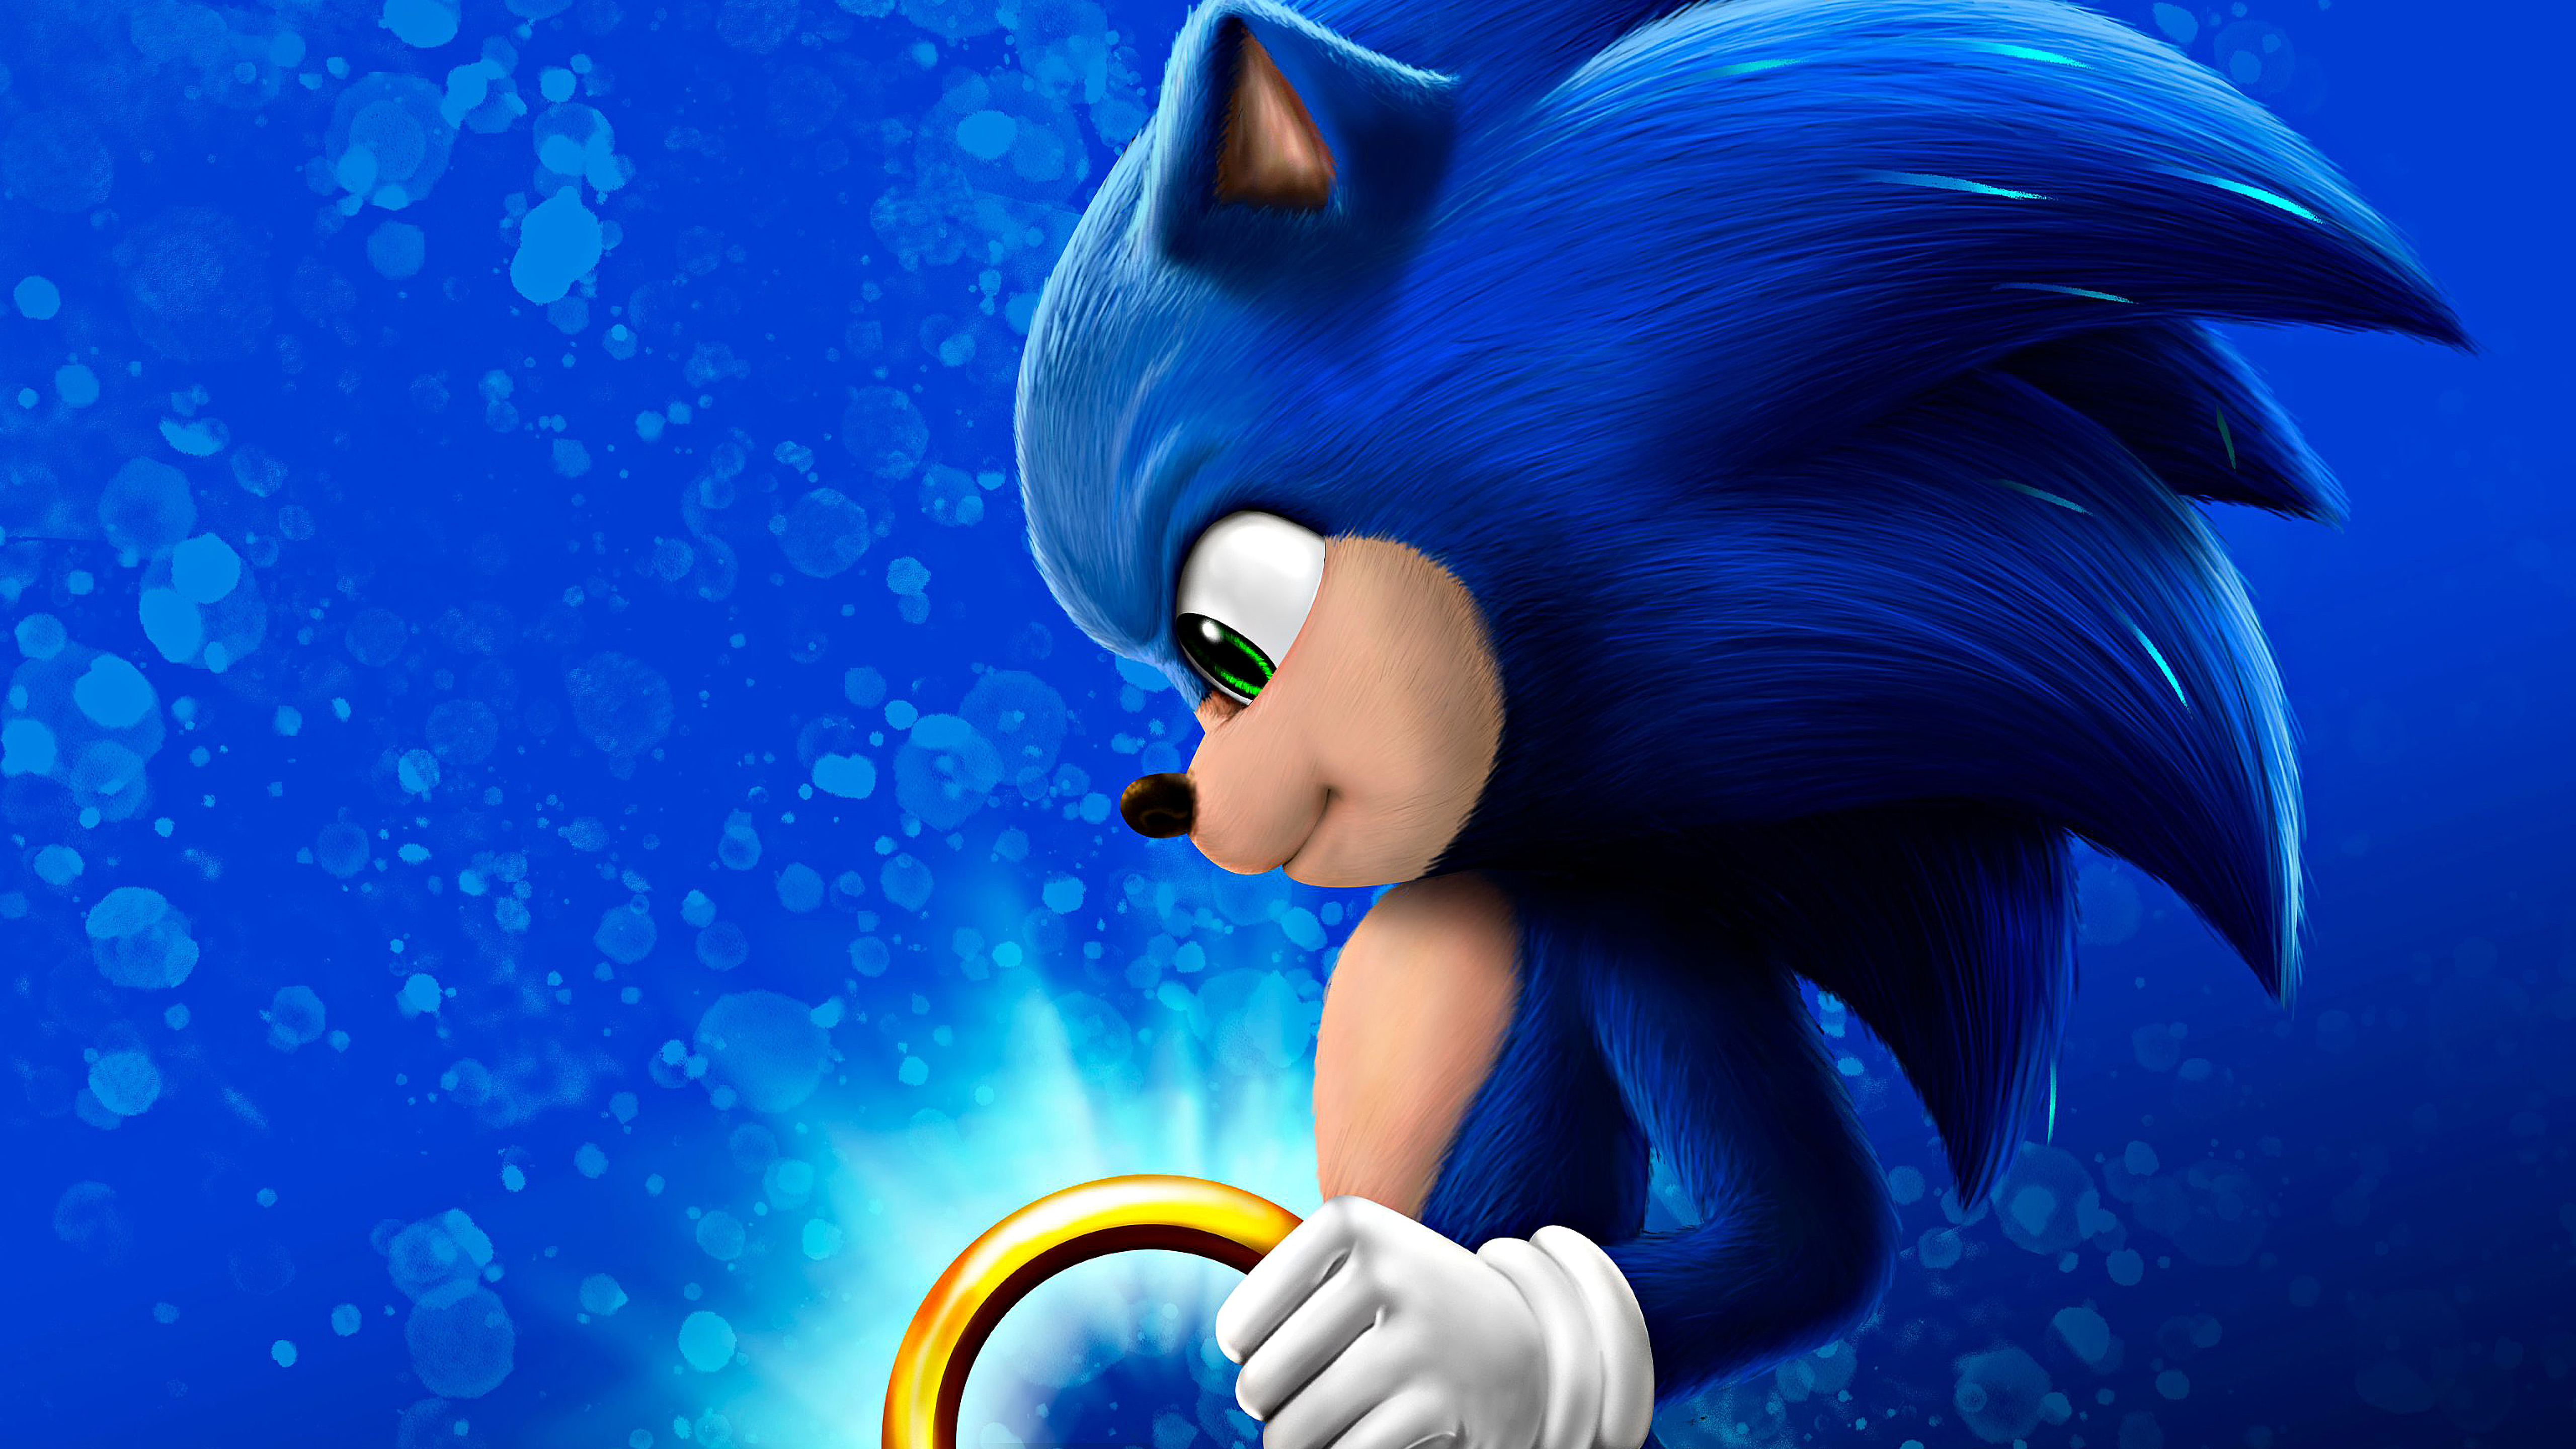 5120x2880 New Sonic Hedgehog 5k Wallpaper Hd Movies 4k Wallpapers Images Photos And Background